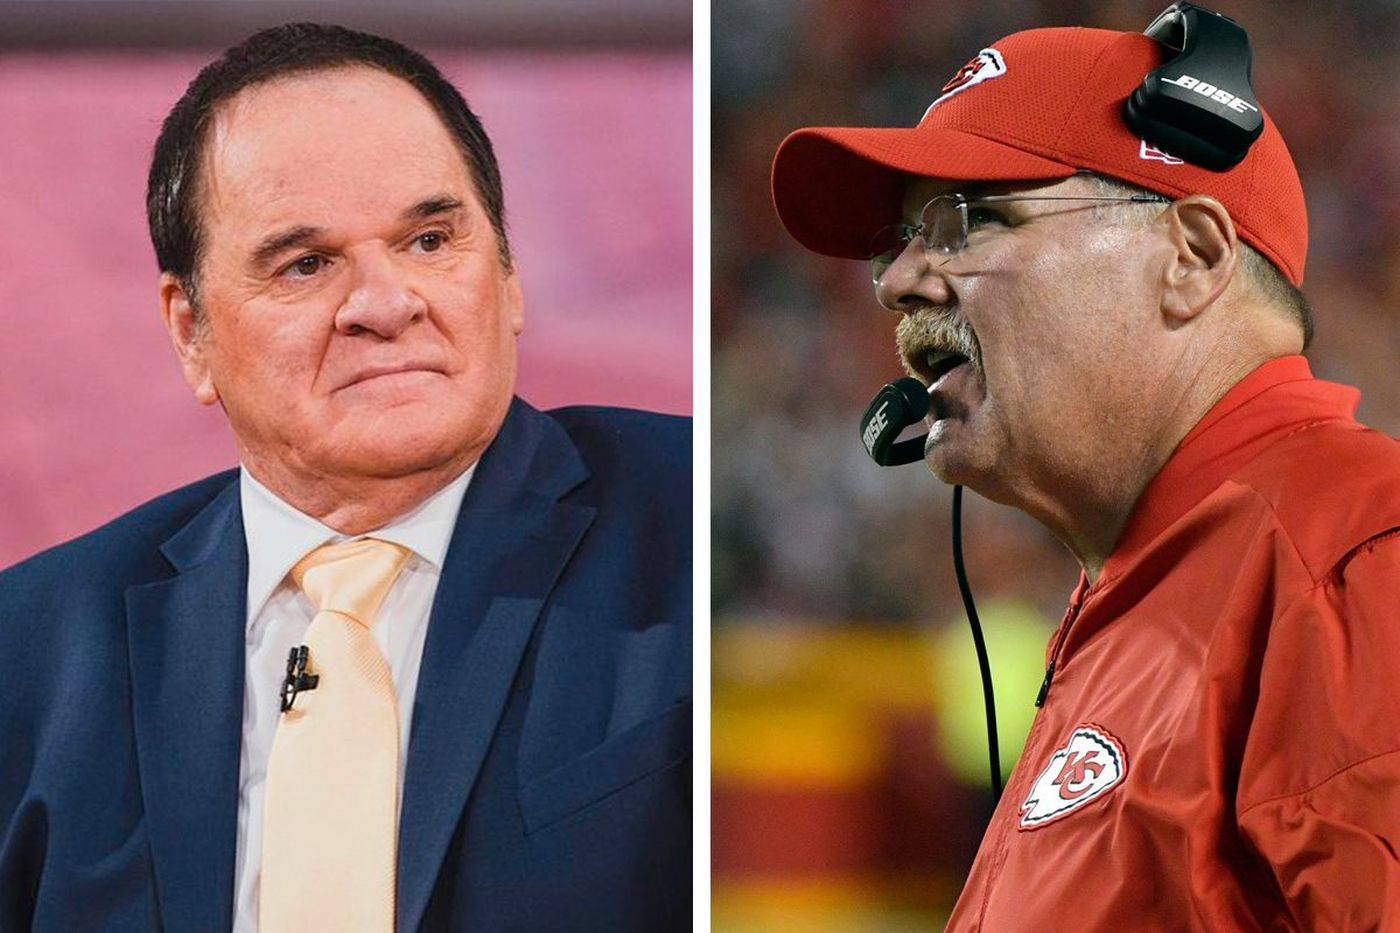 Fox replaces Pete Rose, ESPN experiences technical difficulties